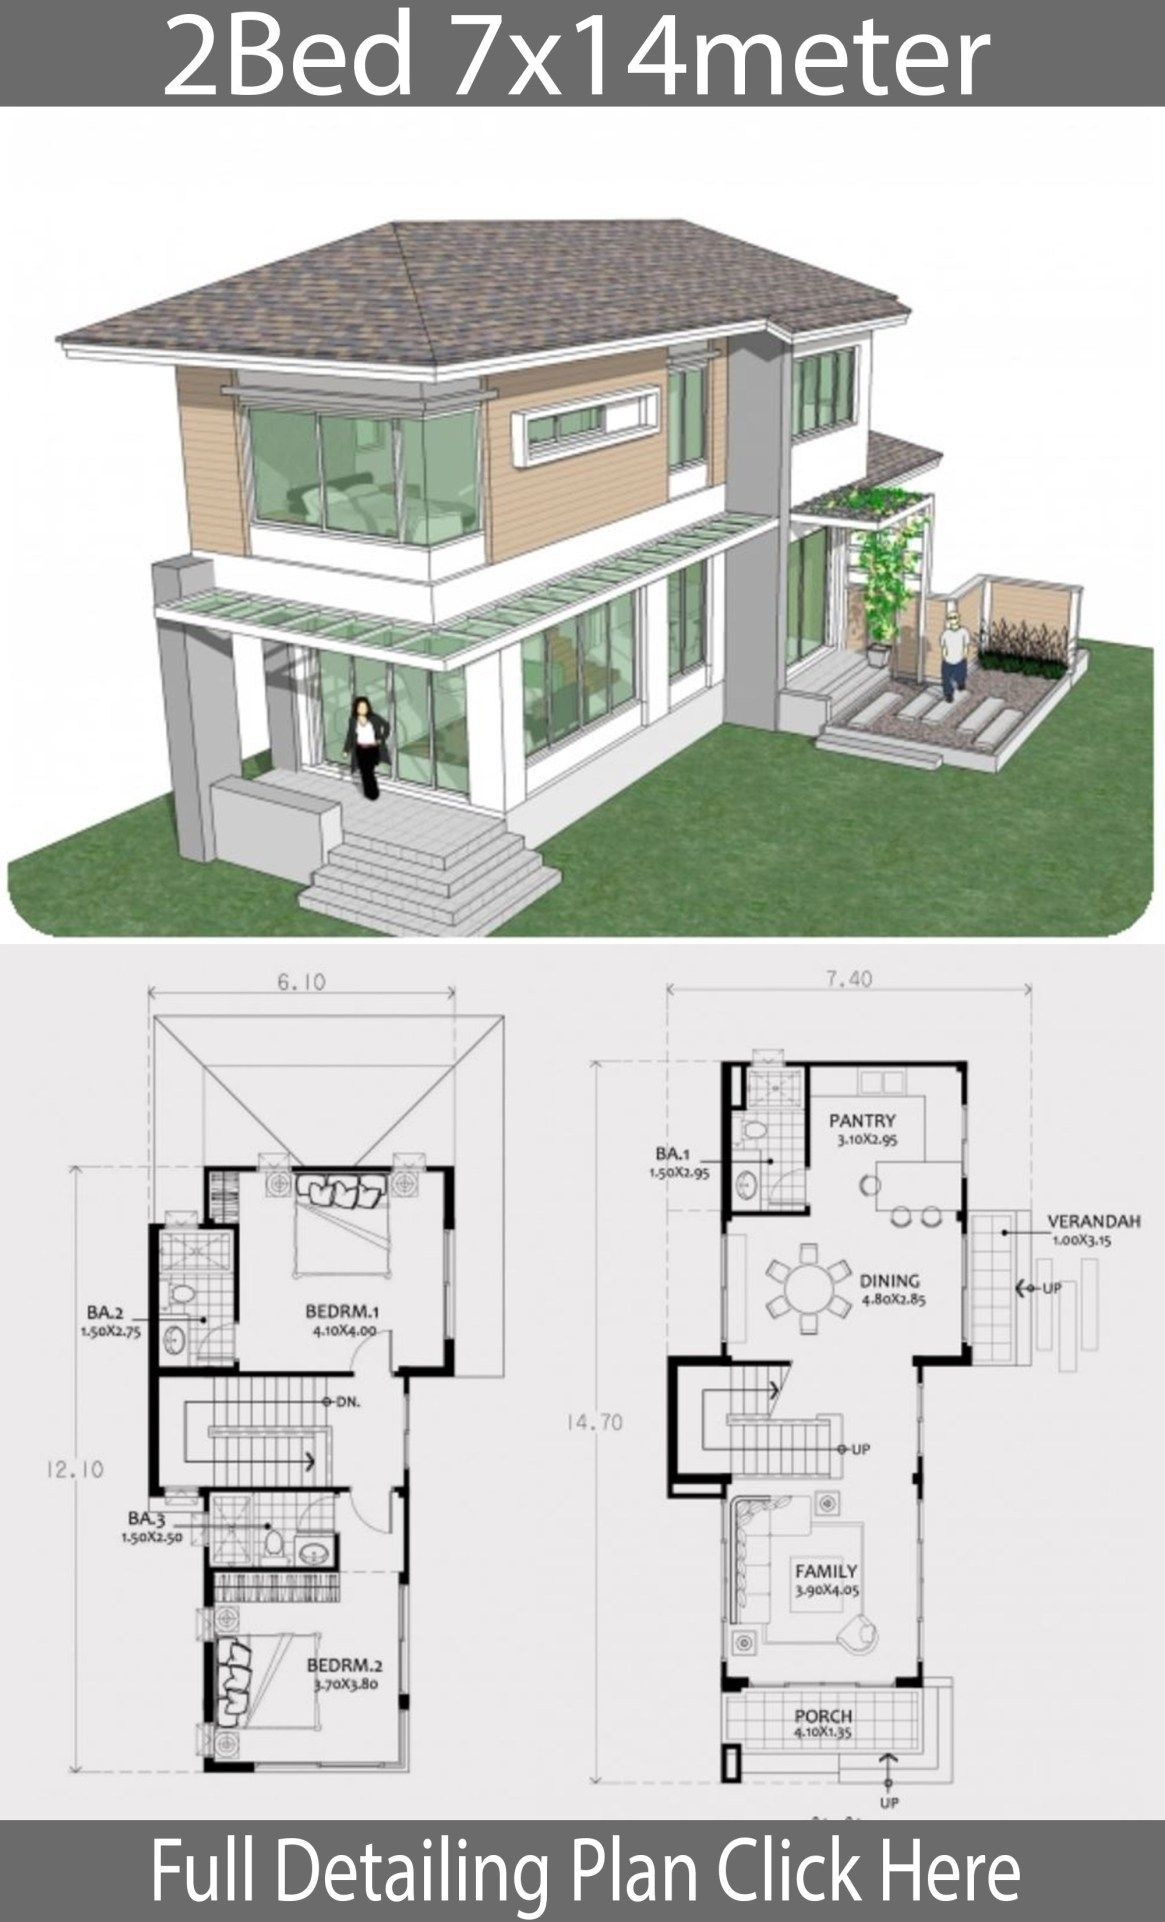 Modern Two Storey House Designs 2020 Two Story House Plans Two Story House Design House Layout Plans